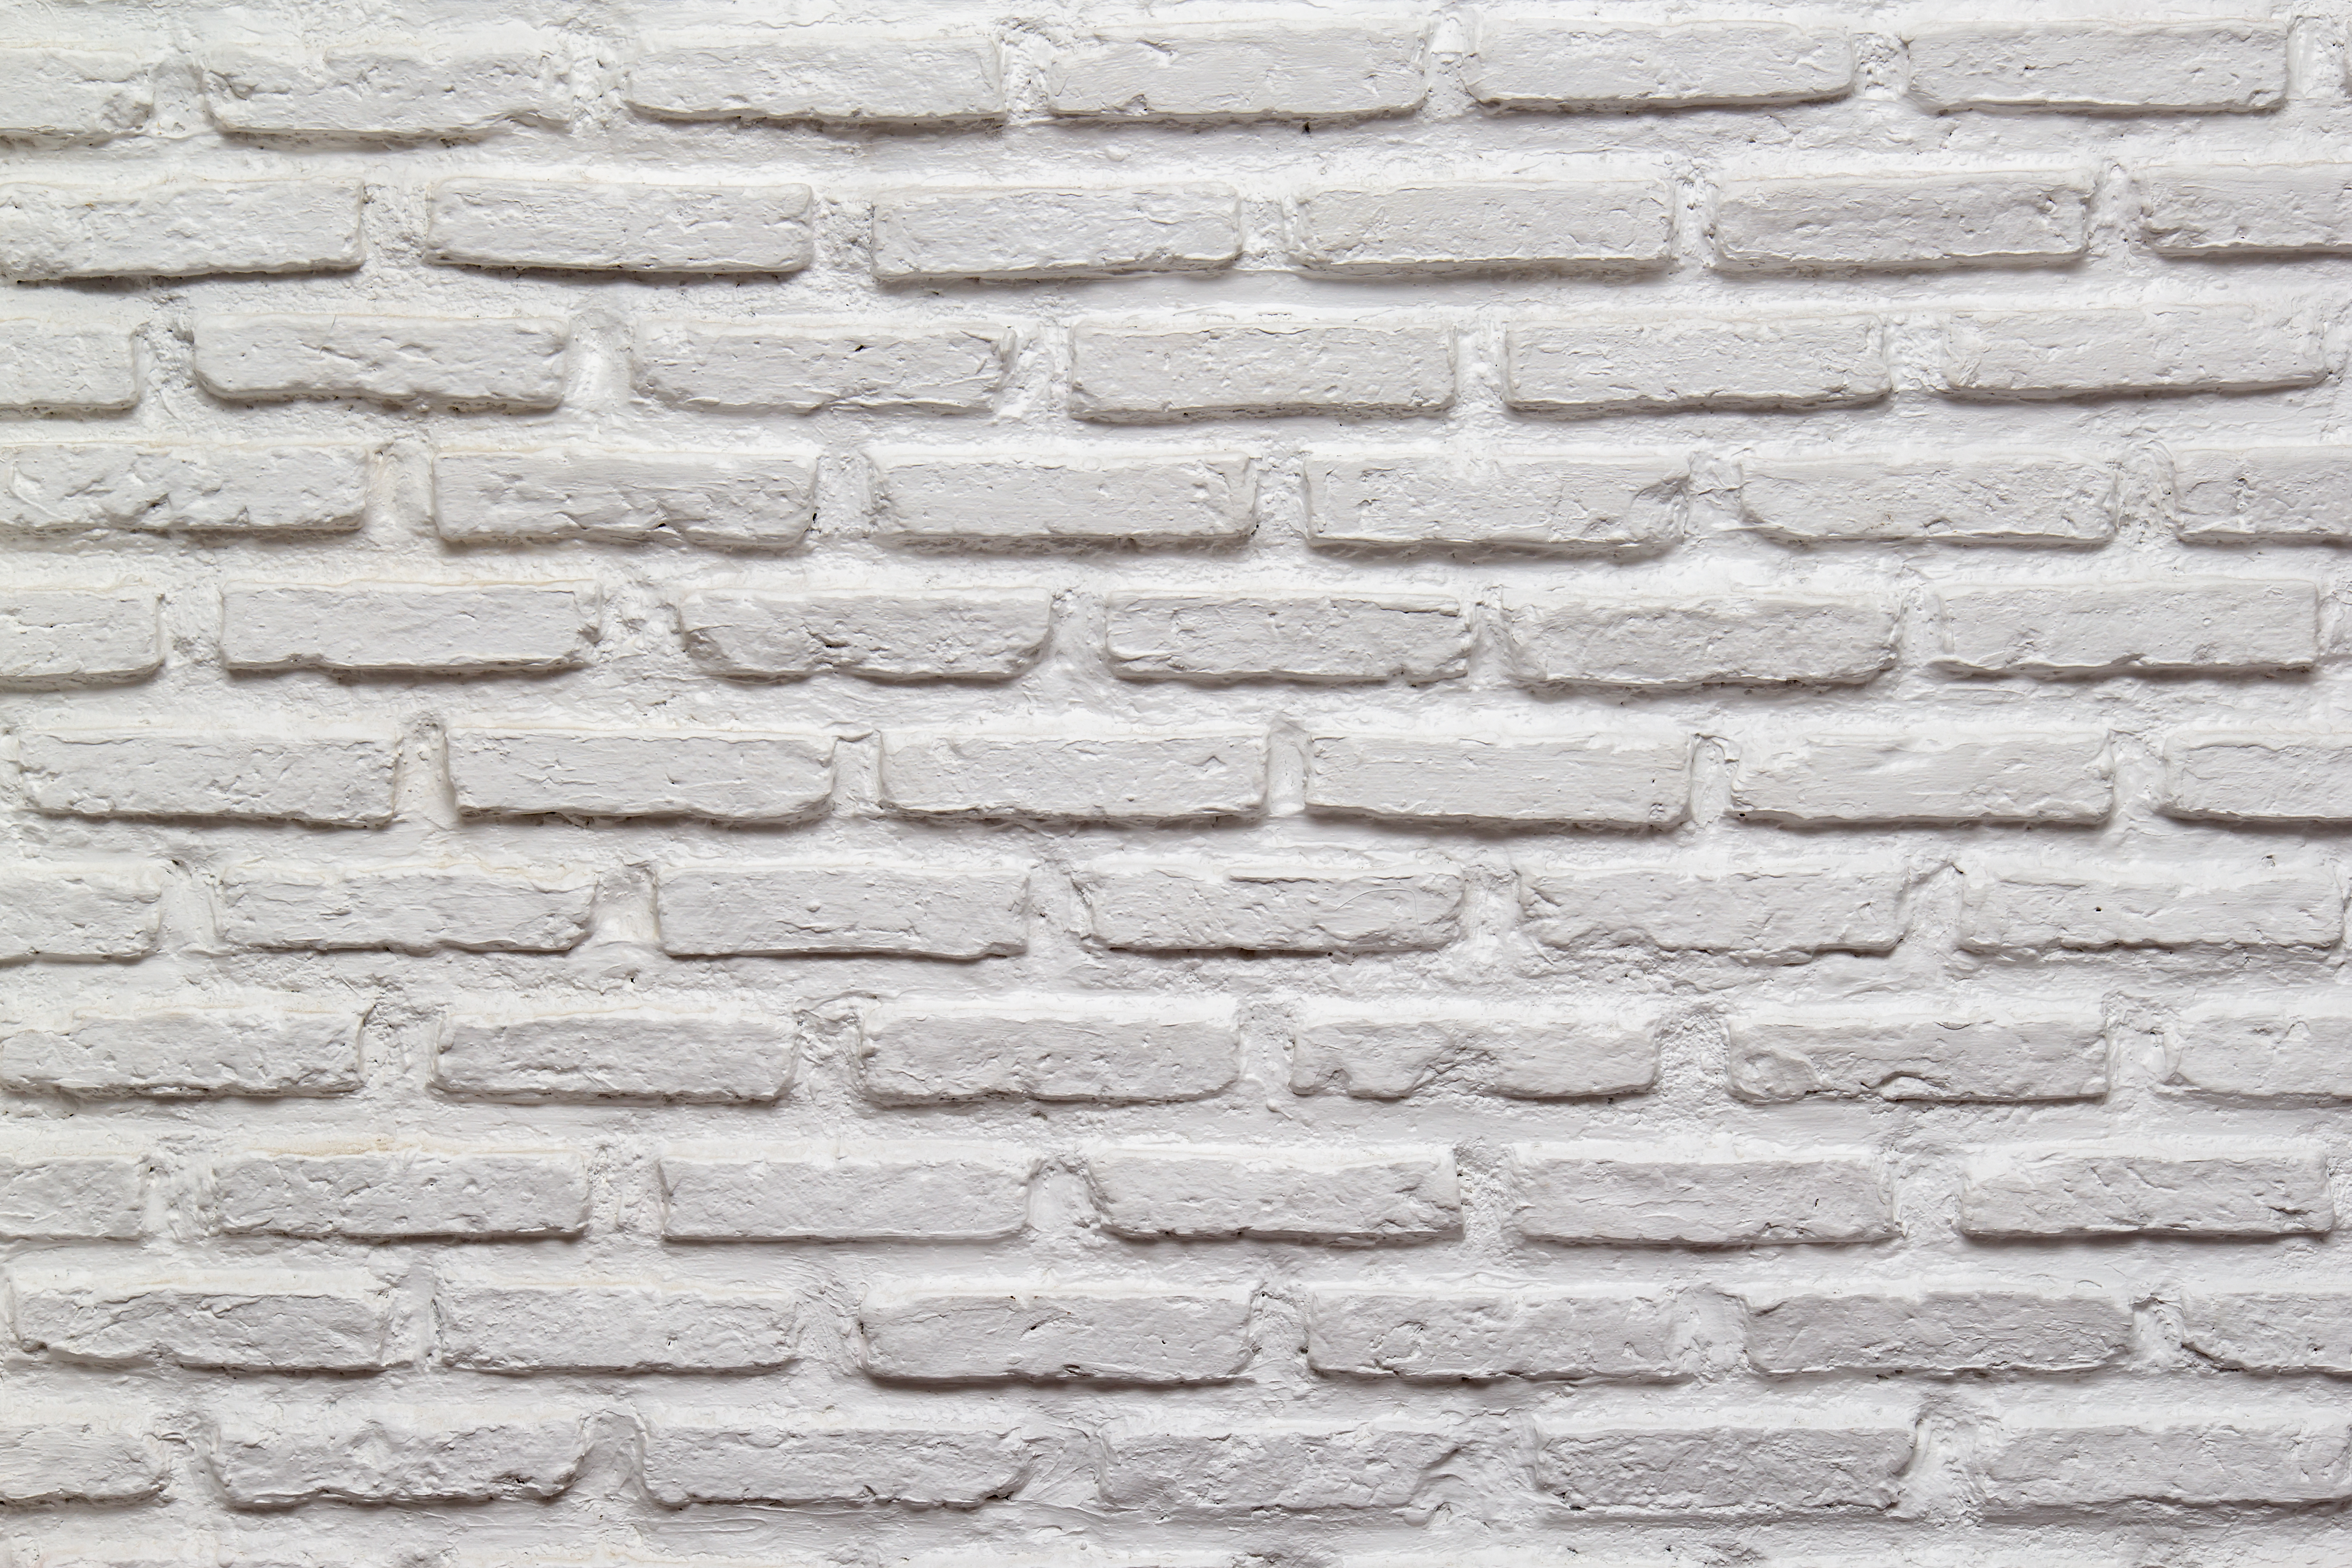 How to Seal Crumbling Interior Bricks | Home Guides | SF Gate